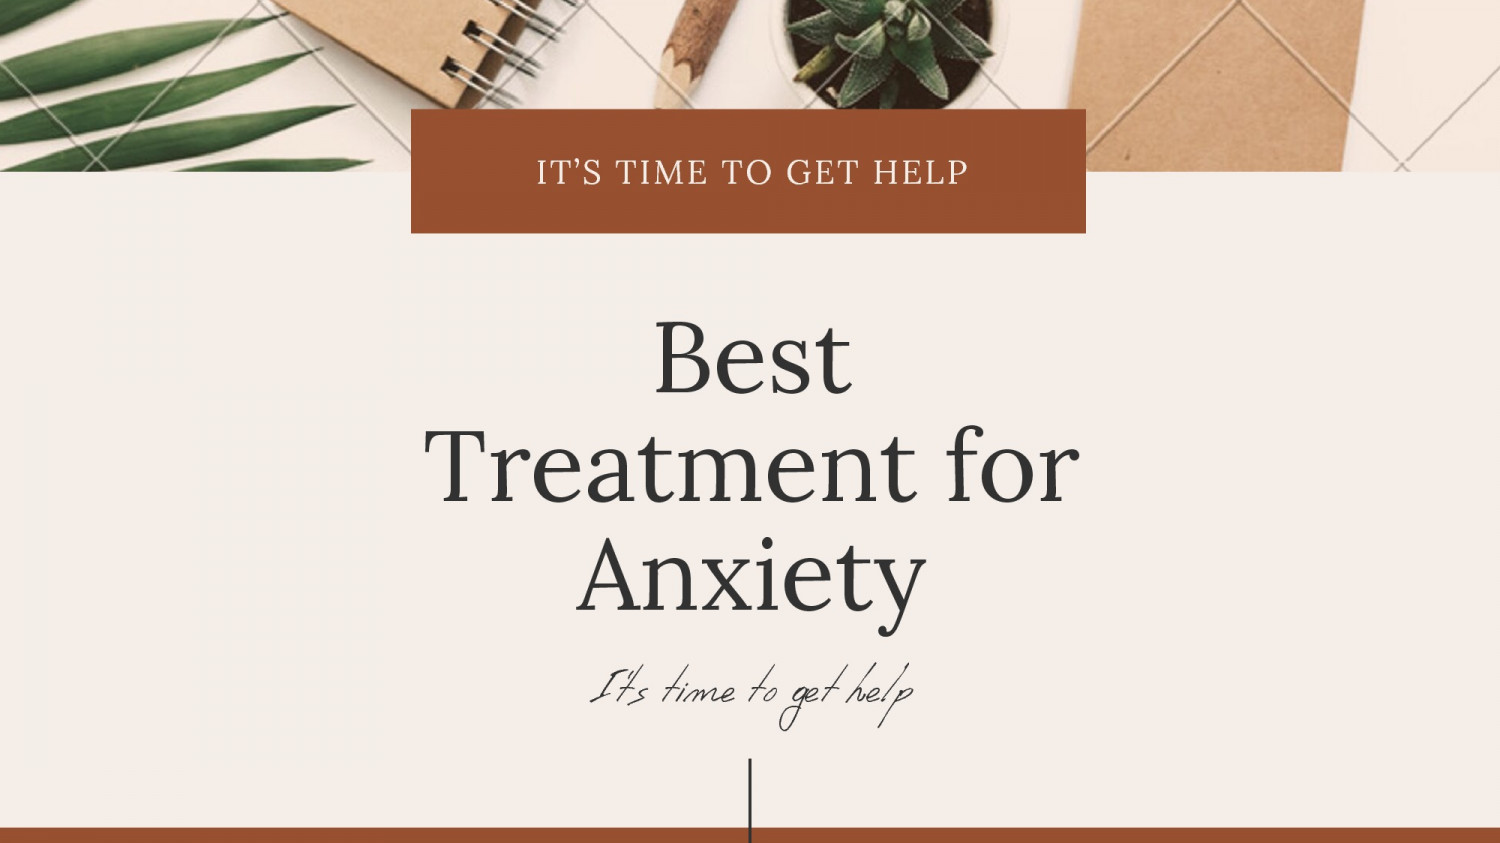 Best Treatment for Anxiety Infographic